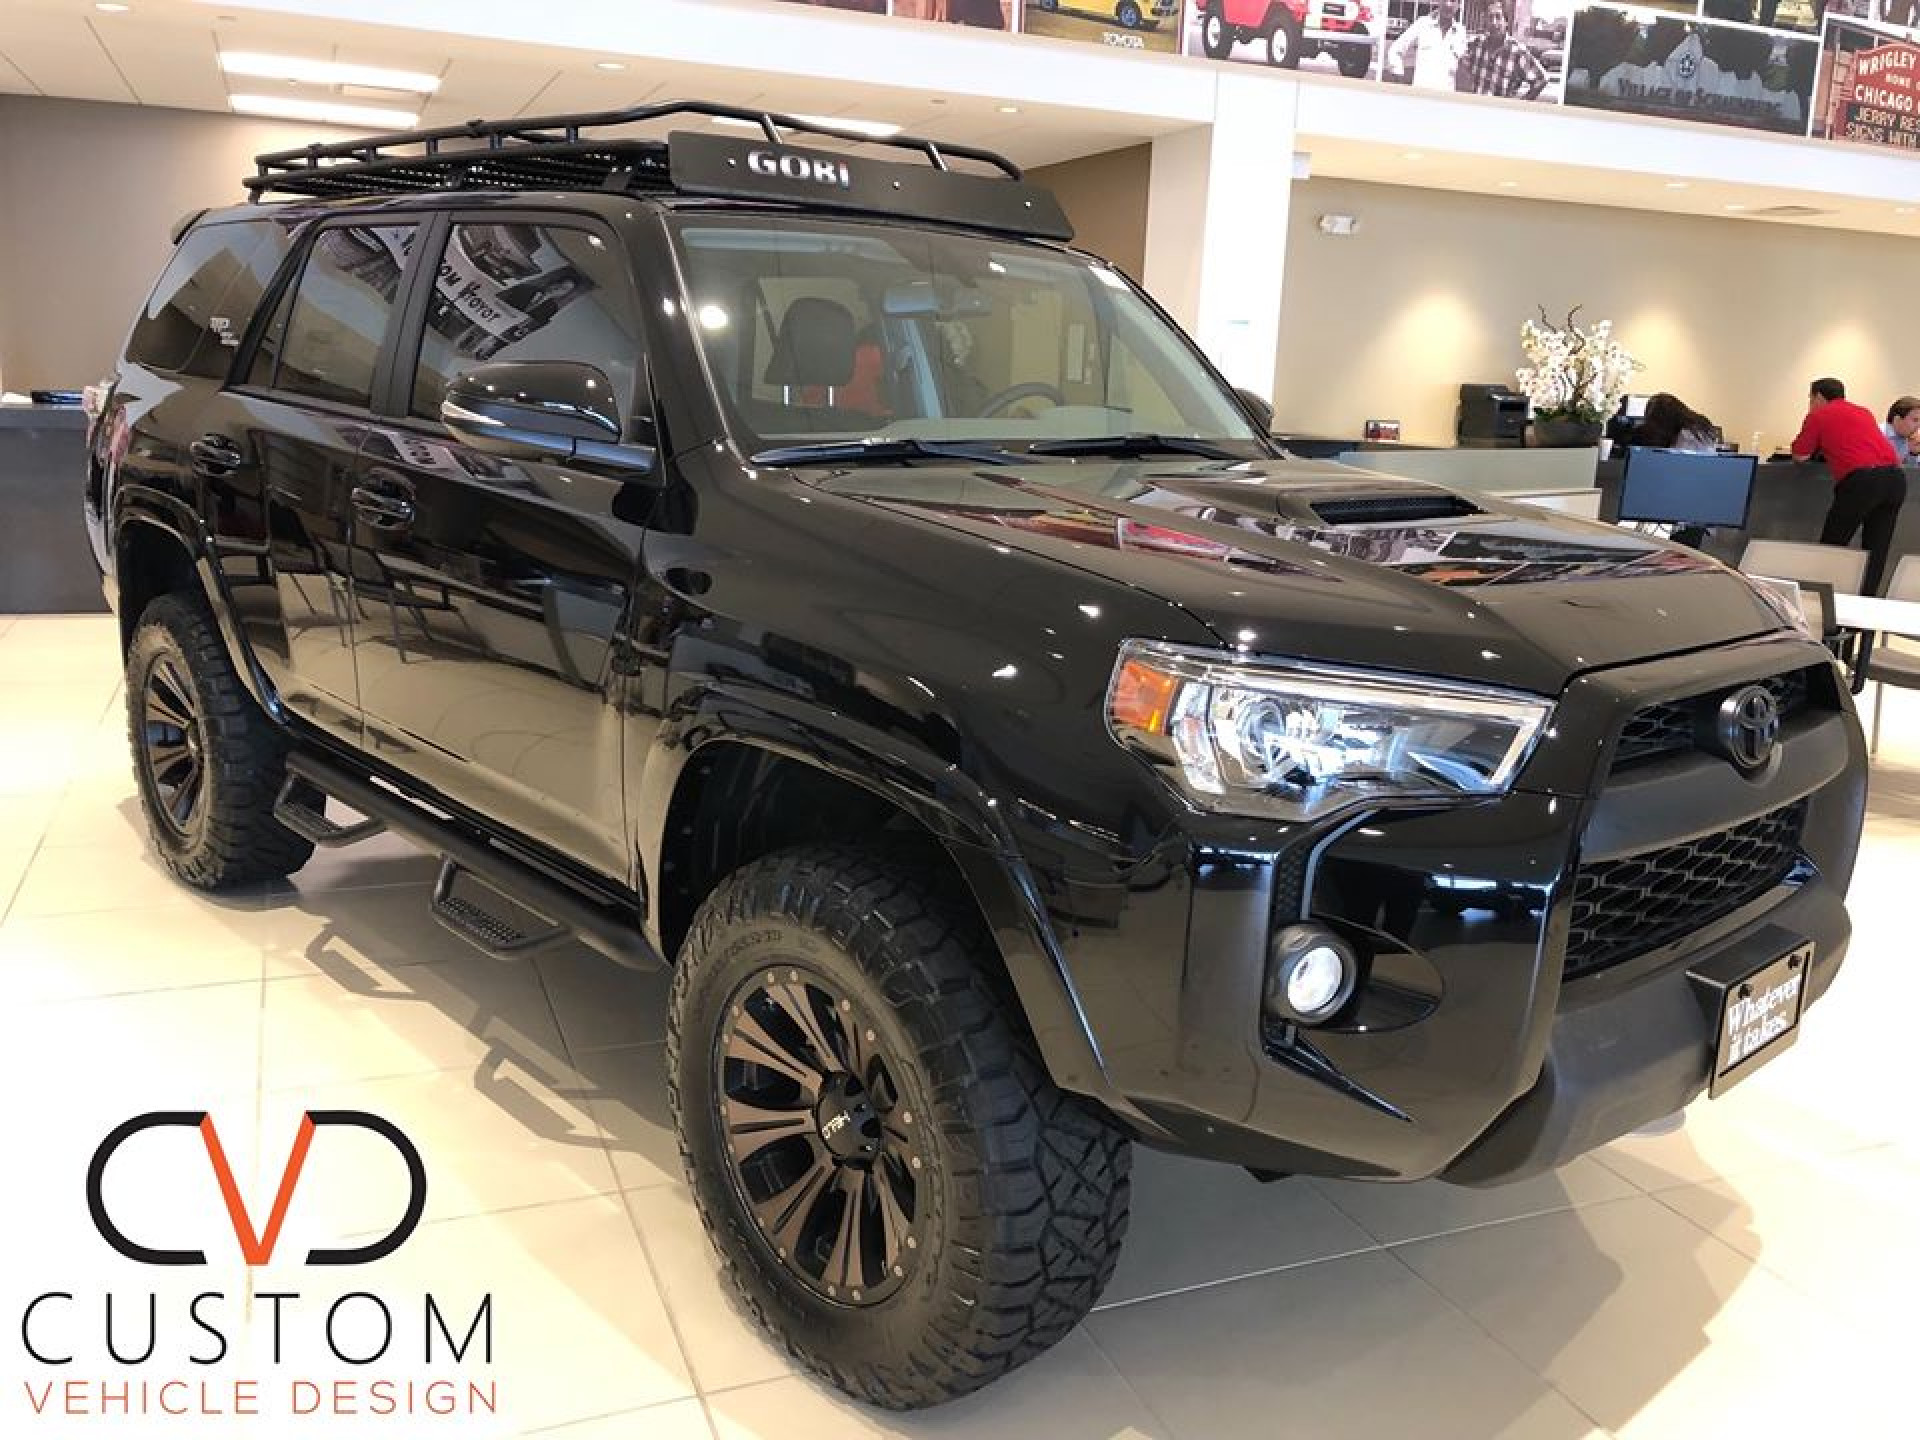 Toyota 4Runner with Helo wheels customized by CVD